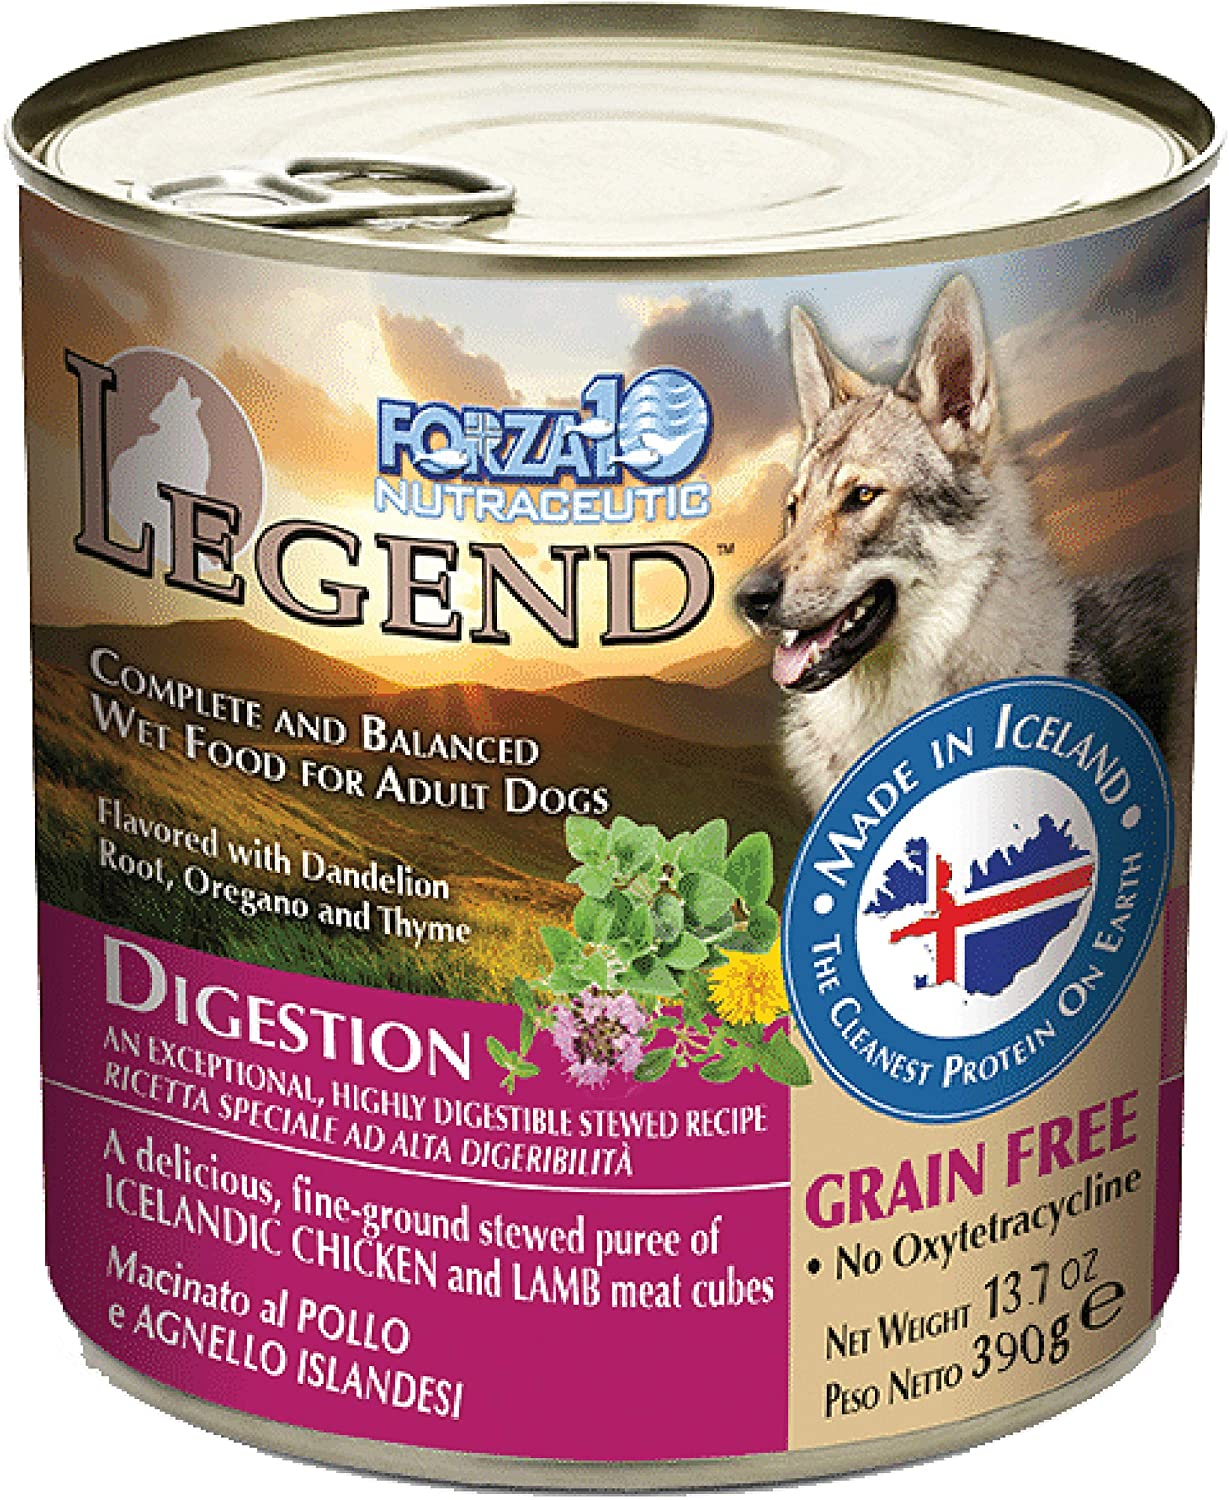 Forza10 Legend Digestion Wet Dog Food, Icelandic Chicken and Lamb Meat Cubes, Canned Grain Free Dog Food, Sensitive Stomach Dog Food, 12 Pack Case (13.7 Ounce Cans)